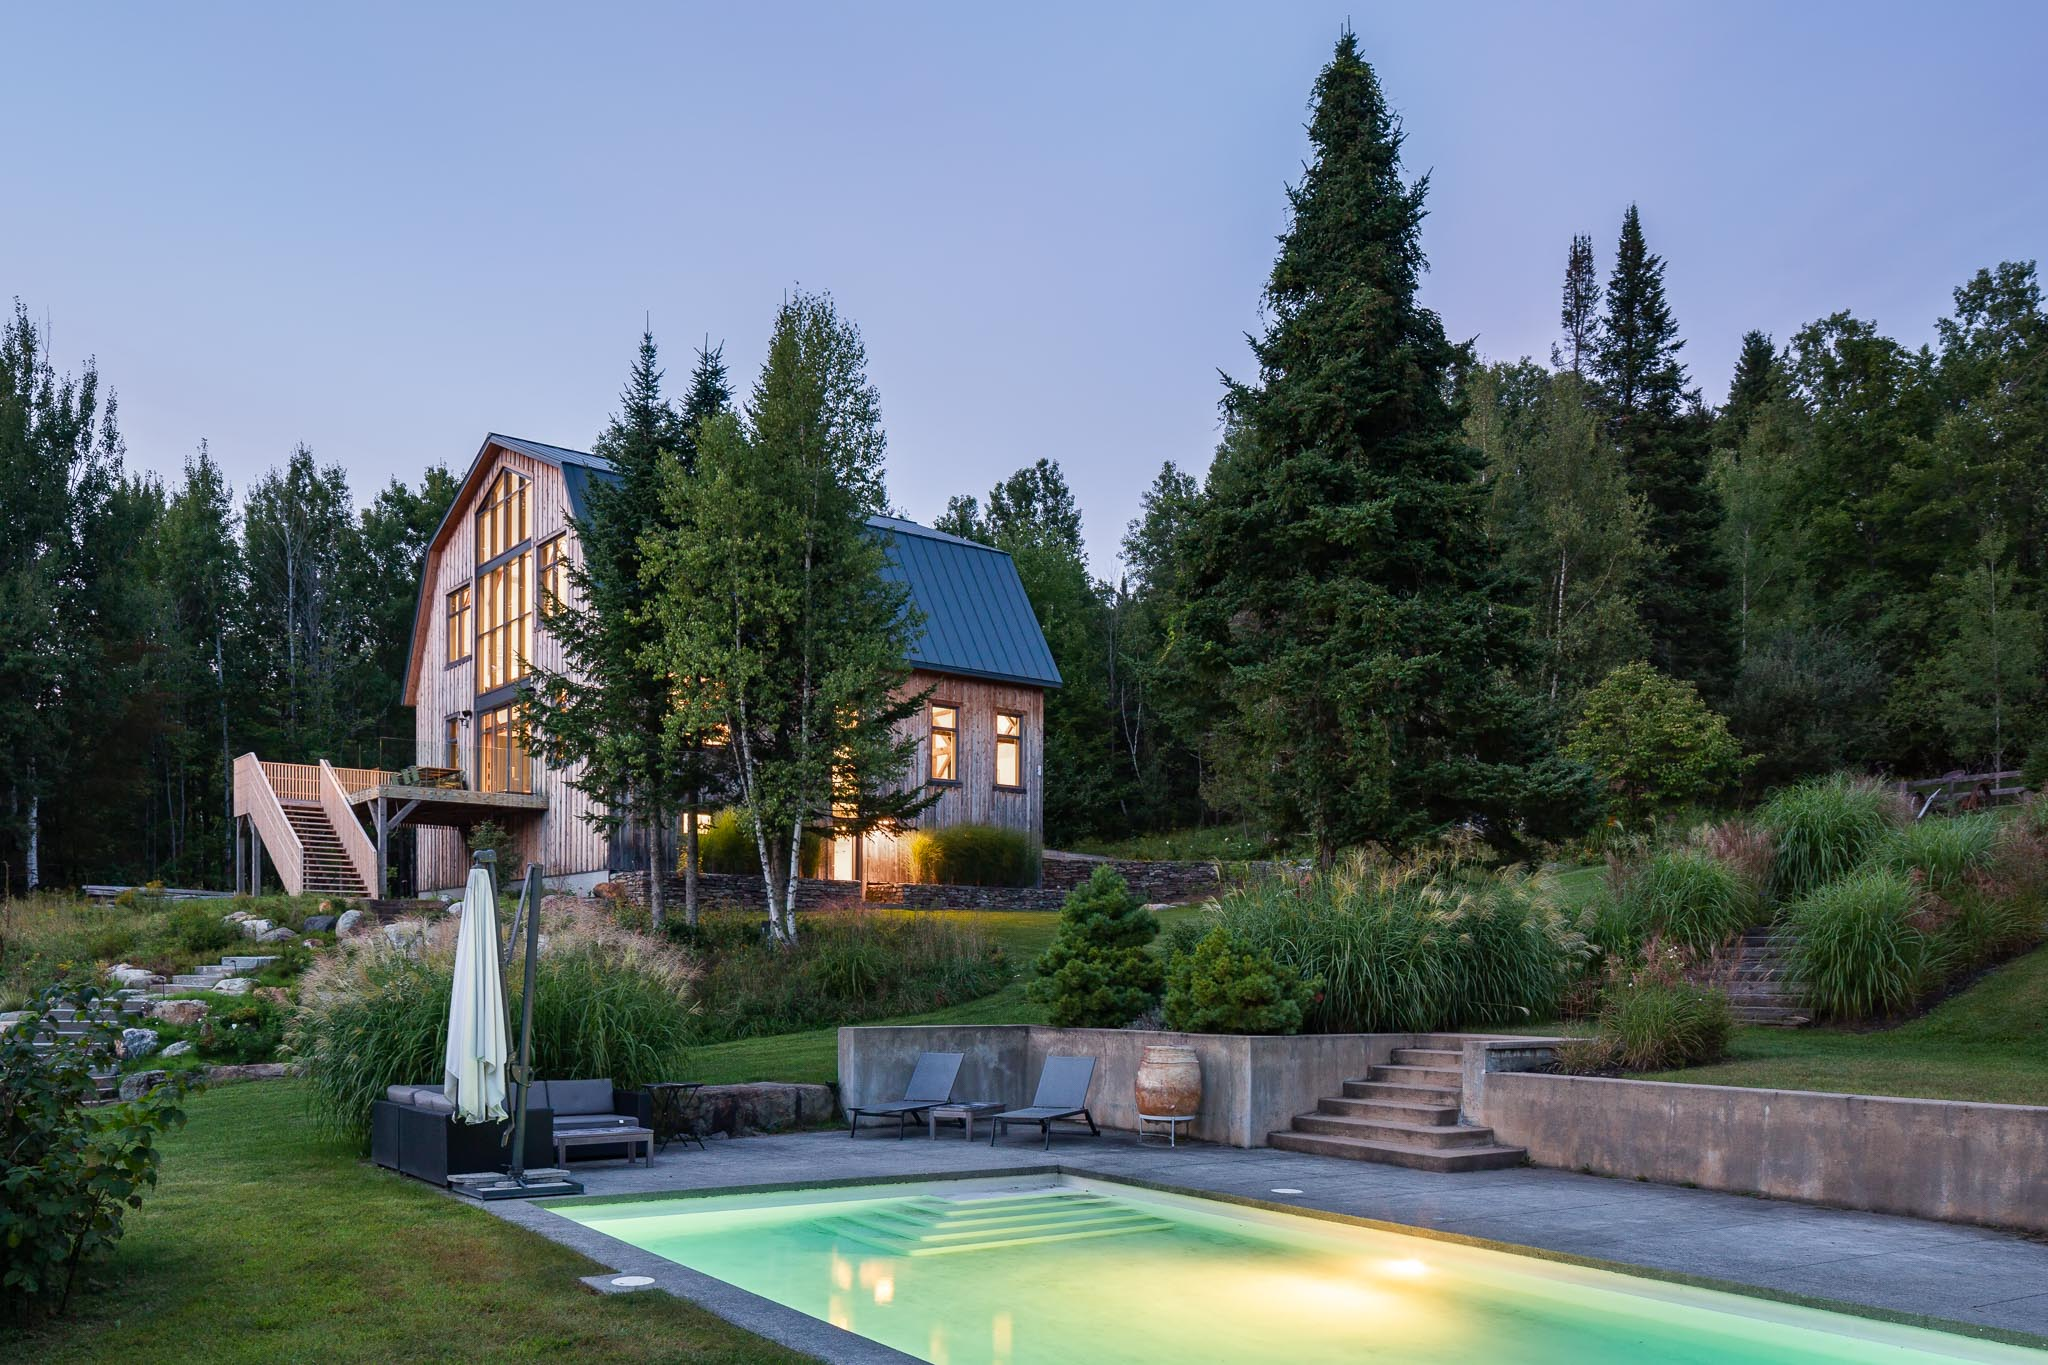 Renovation of a cottage and landscaping. Modern concrete pool. Exterior coating of the barn in boards of cedar board and batten. Large windows and cedar rear terrace